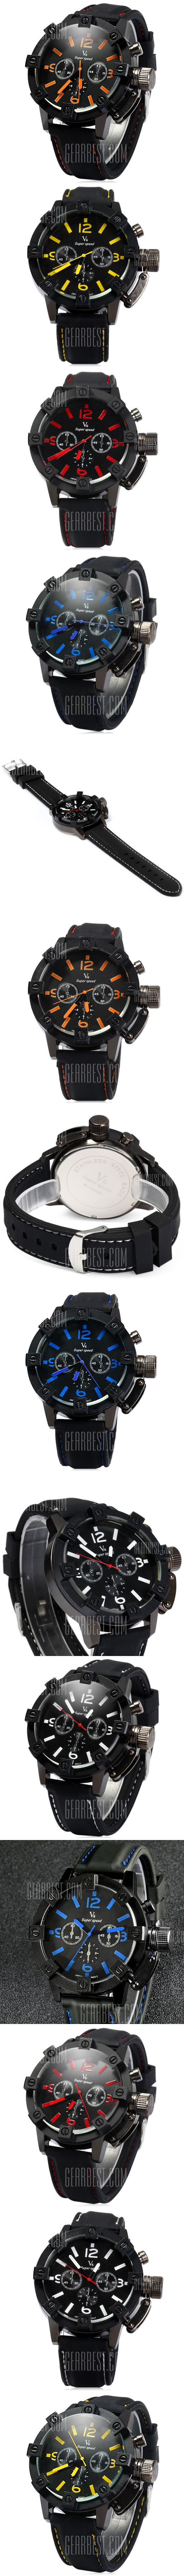 V6 V0045 Large Crown Japan Quartz Male Watch Sports Wristwatch - FREE SHIPPING - Price: $7.20 - Buy Now: https://ariani-shop.com/s/122354